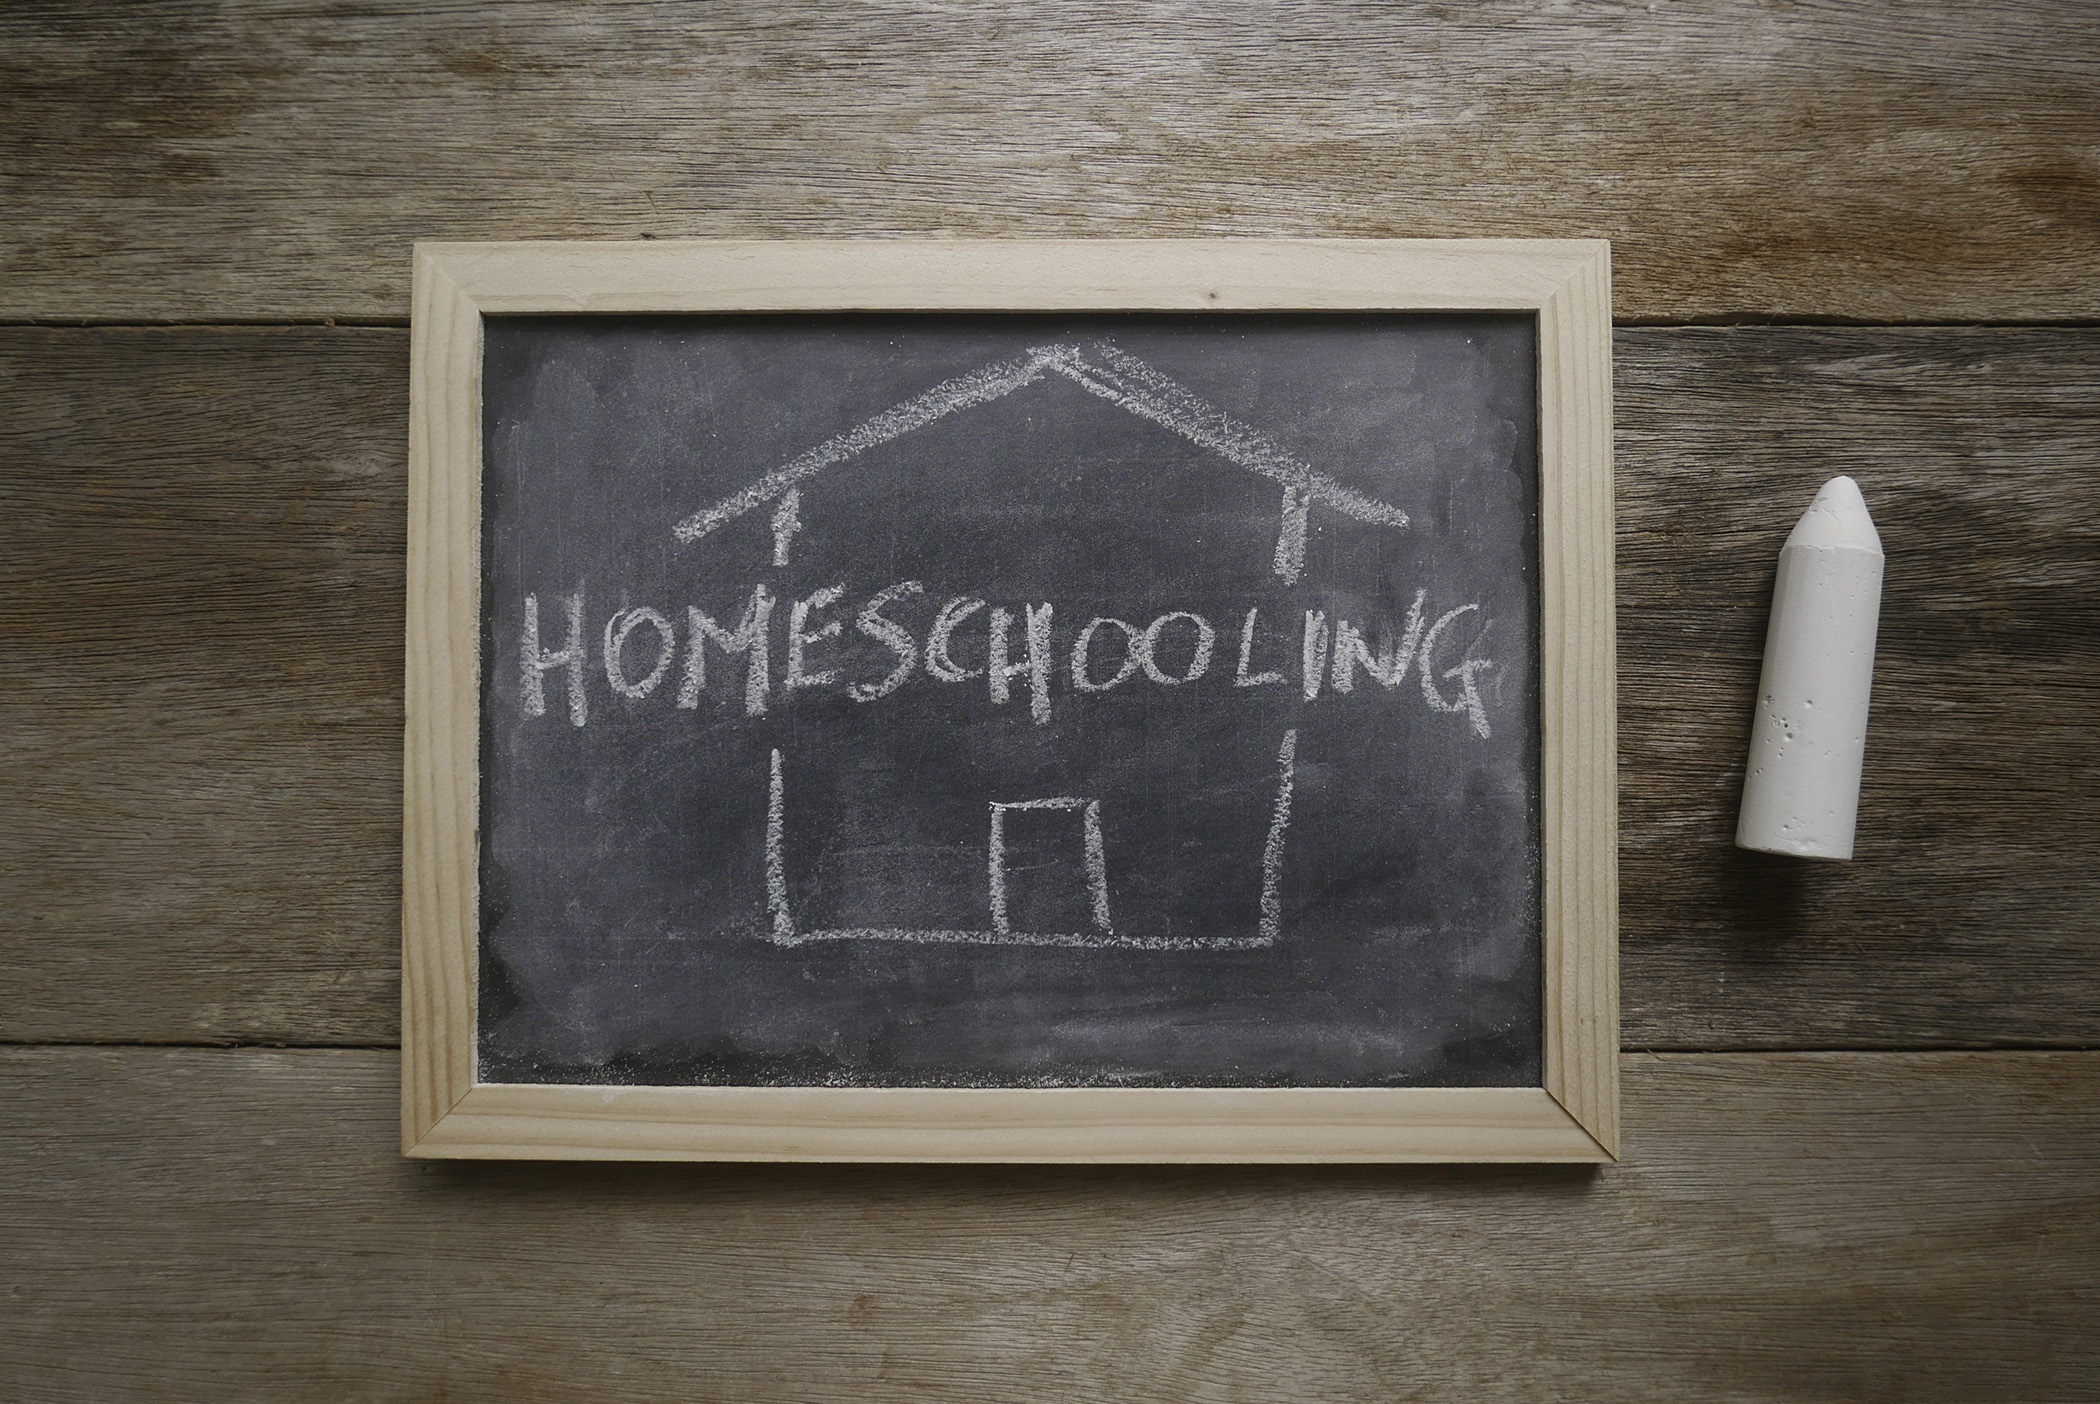 This is a chalkboard with the word homeschooling on it.